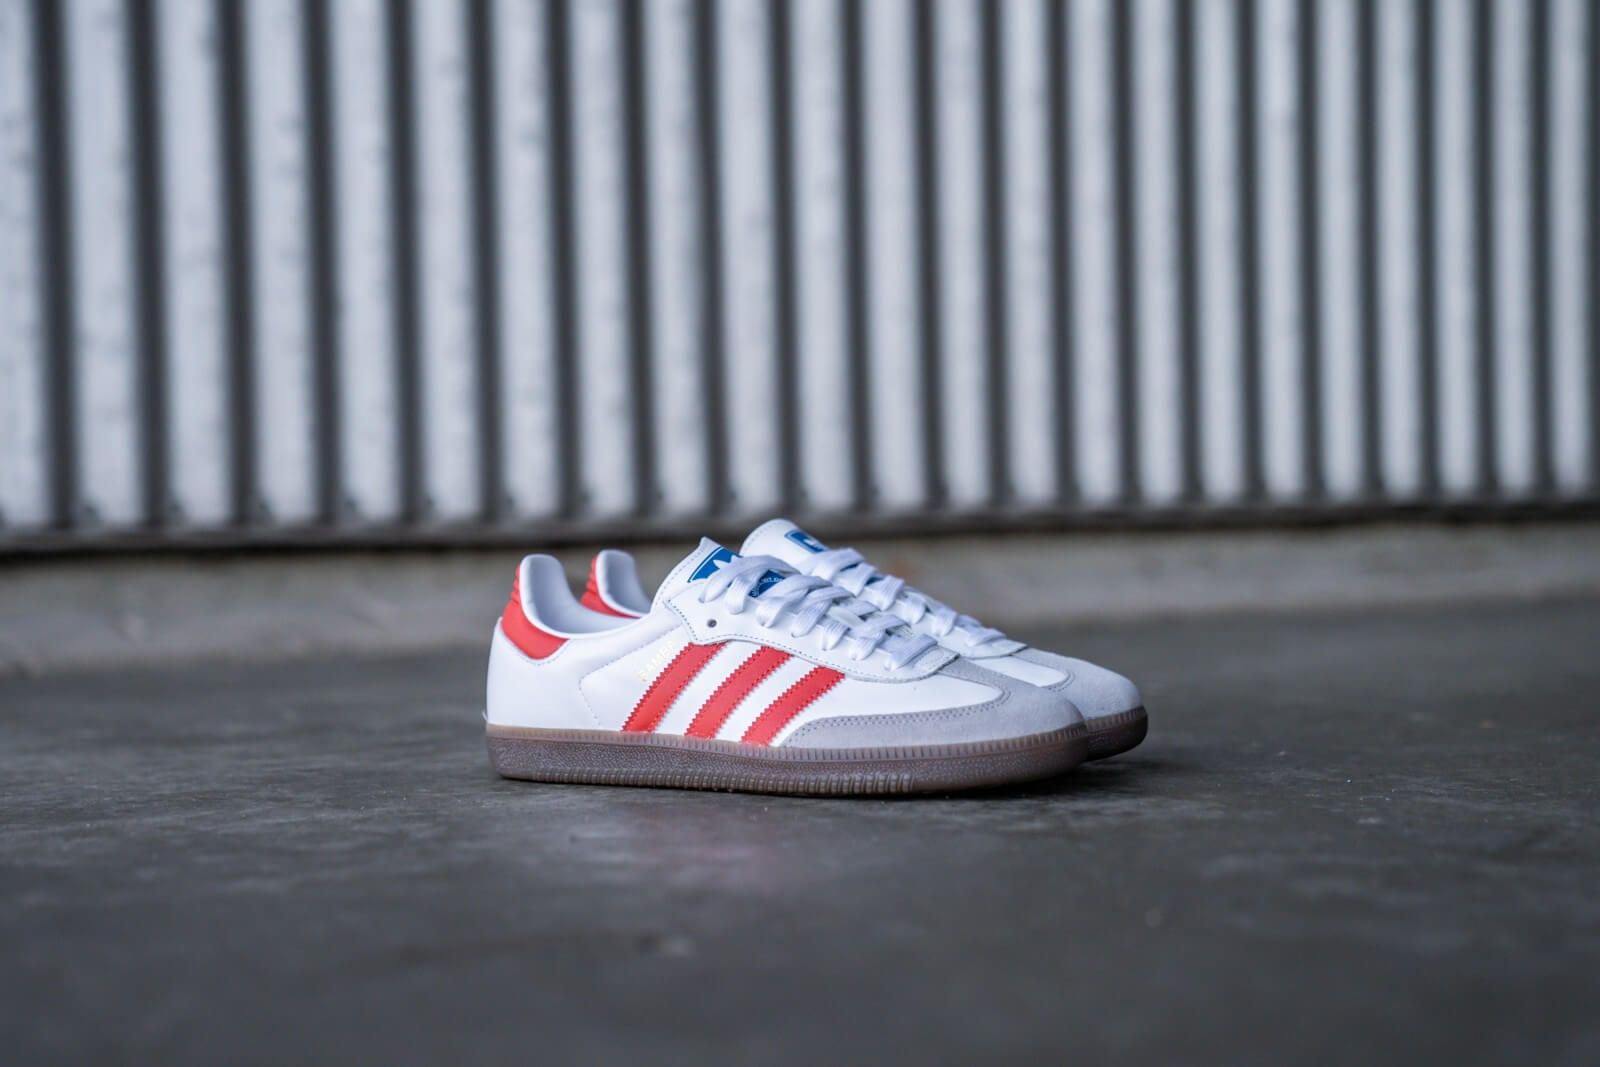 Adidas Samba OG Footwear WhiteTrace Scarlett Clear Granite EF6551